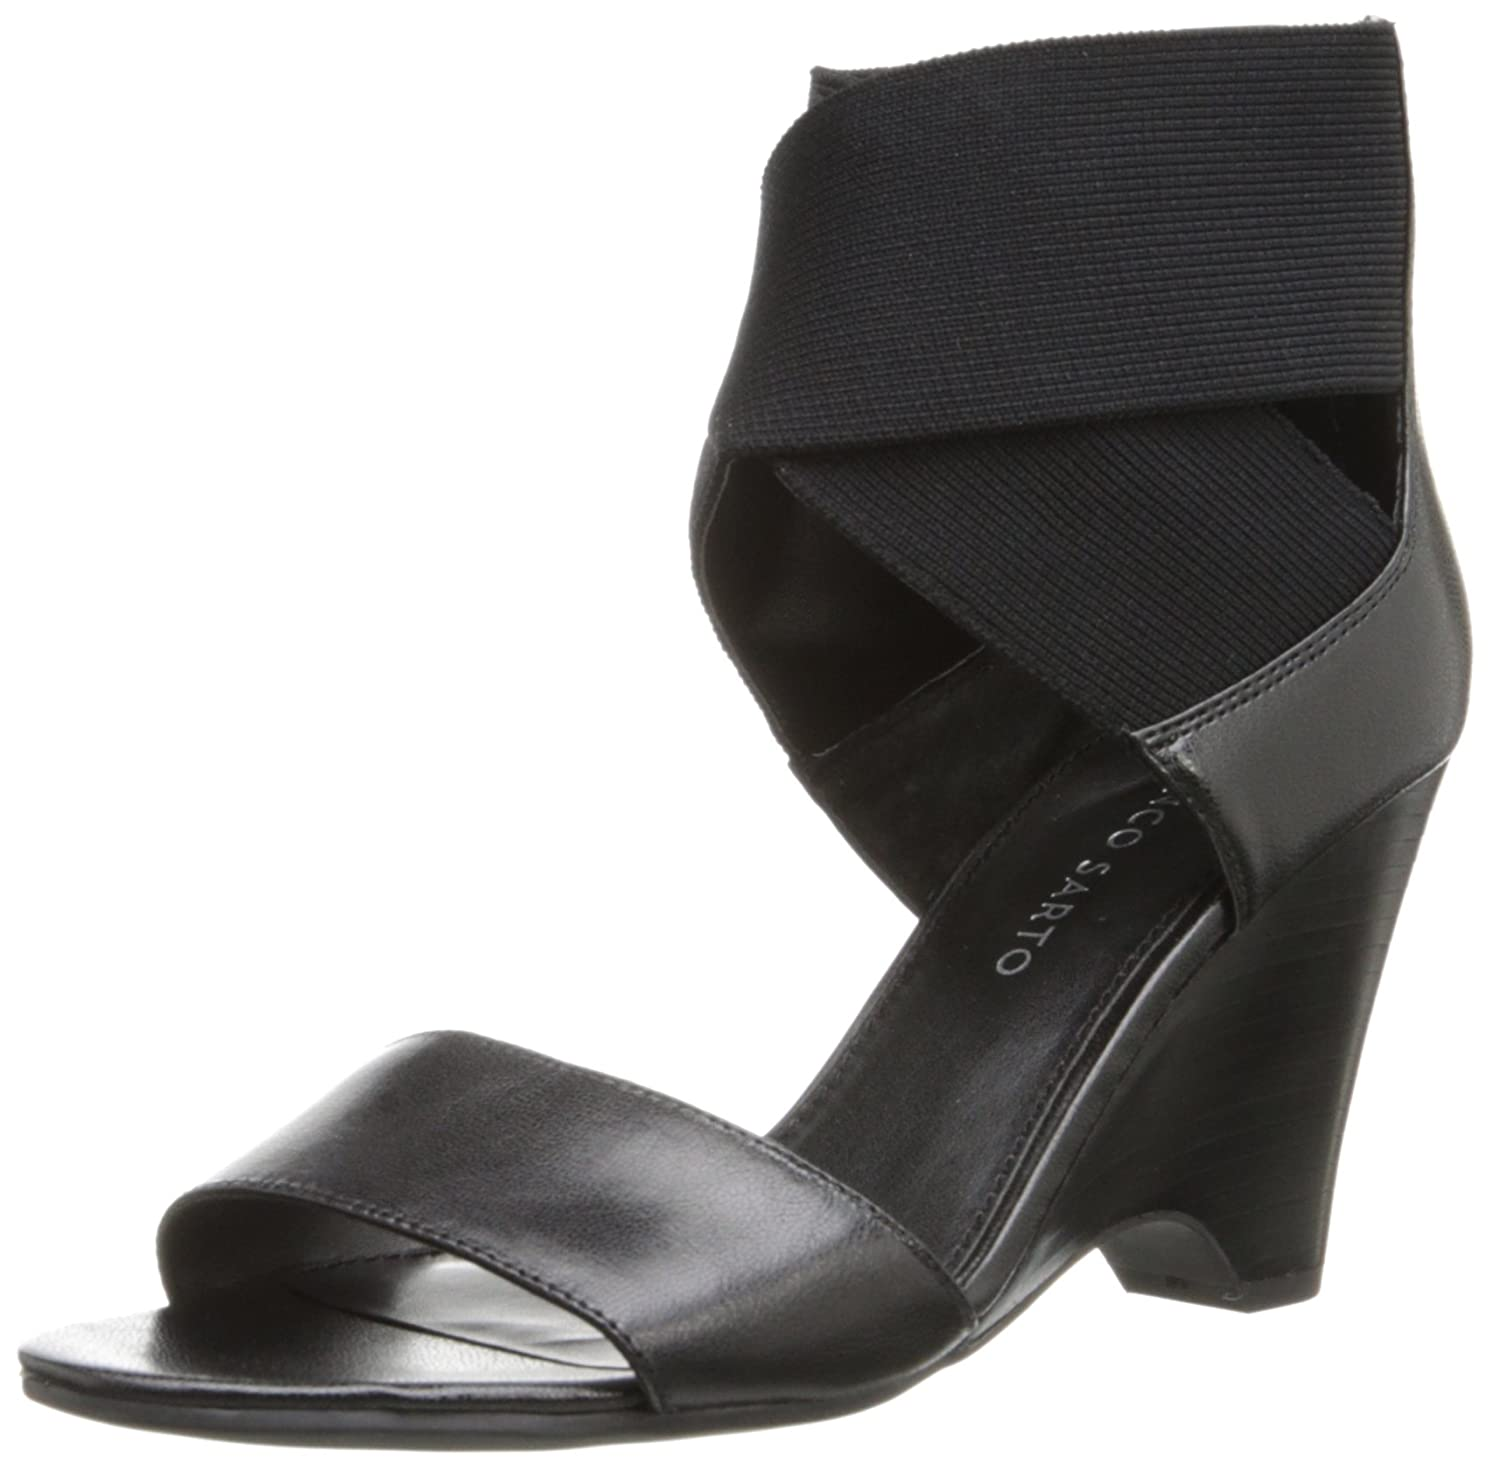 Franco Sarto Women's Texture Wedge Sandal B00F0AEVAU 8 B(M) US|Black